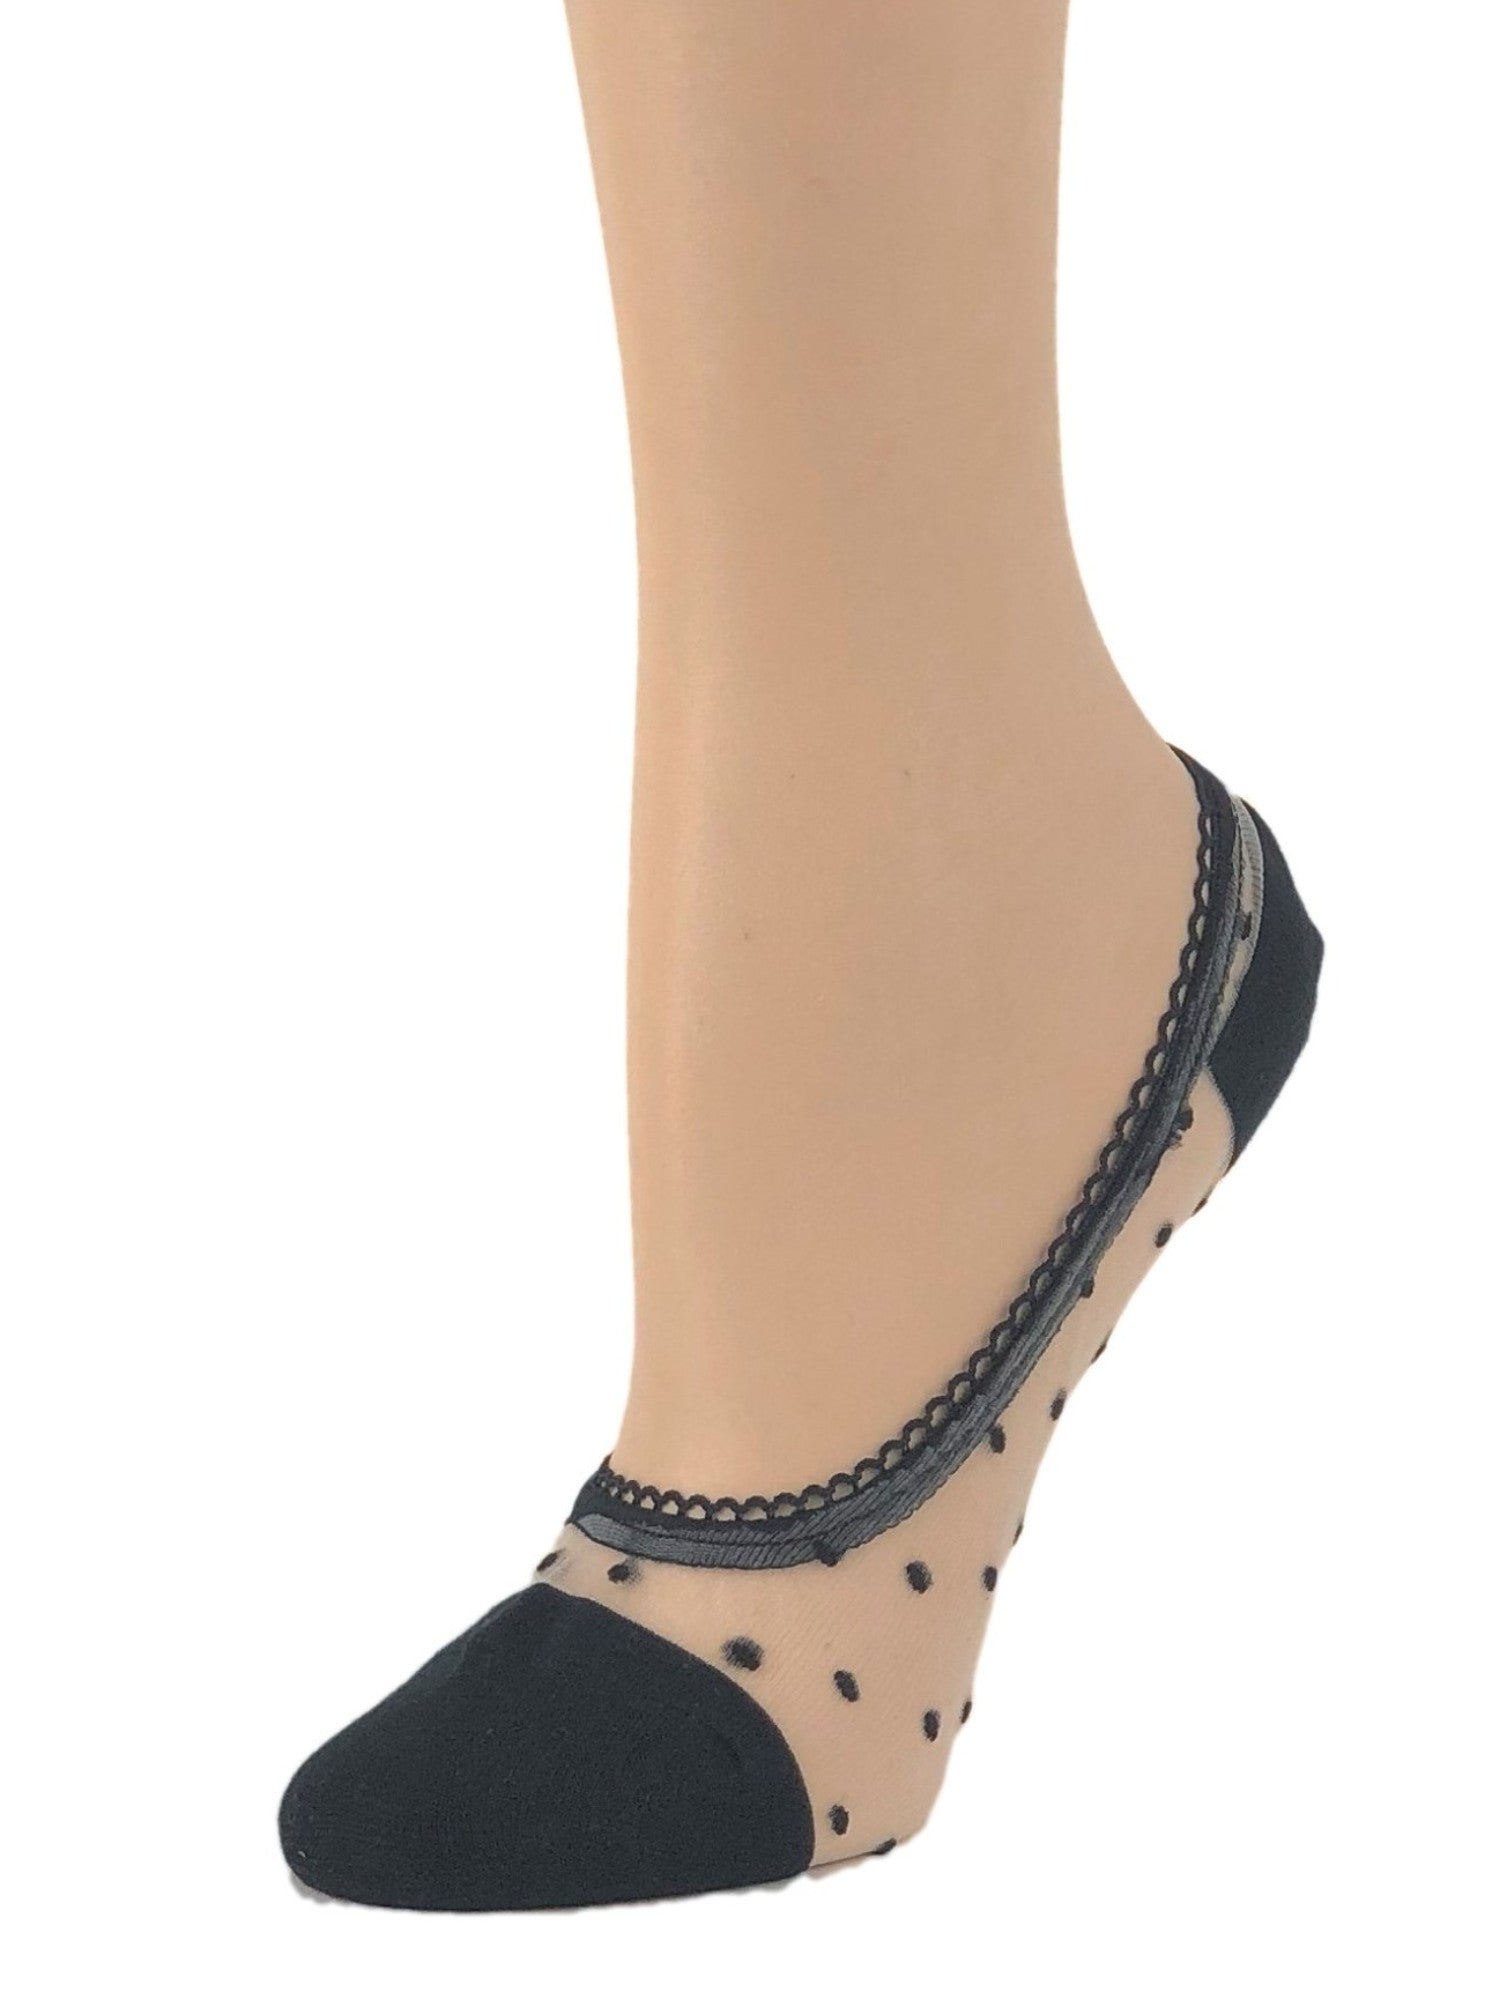 Dotted Black Ankle Sheer Socks - Global Trendz Fashion®